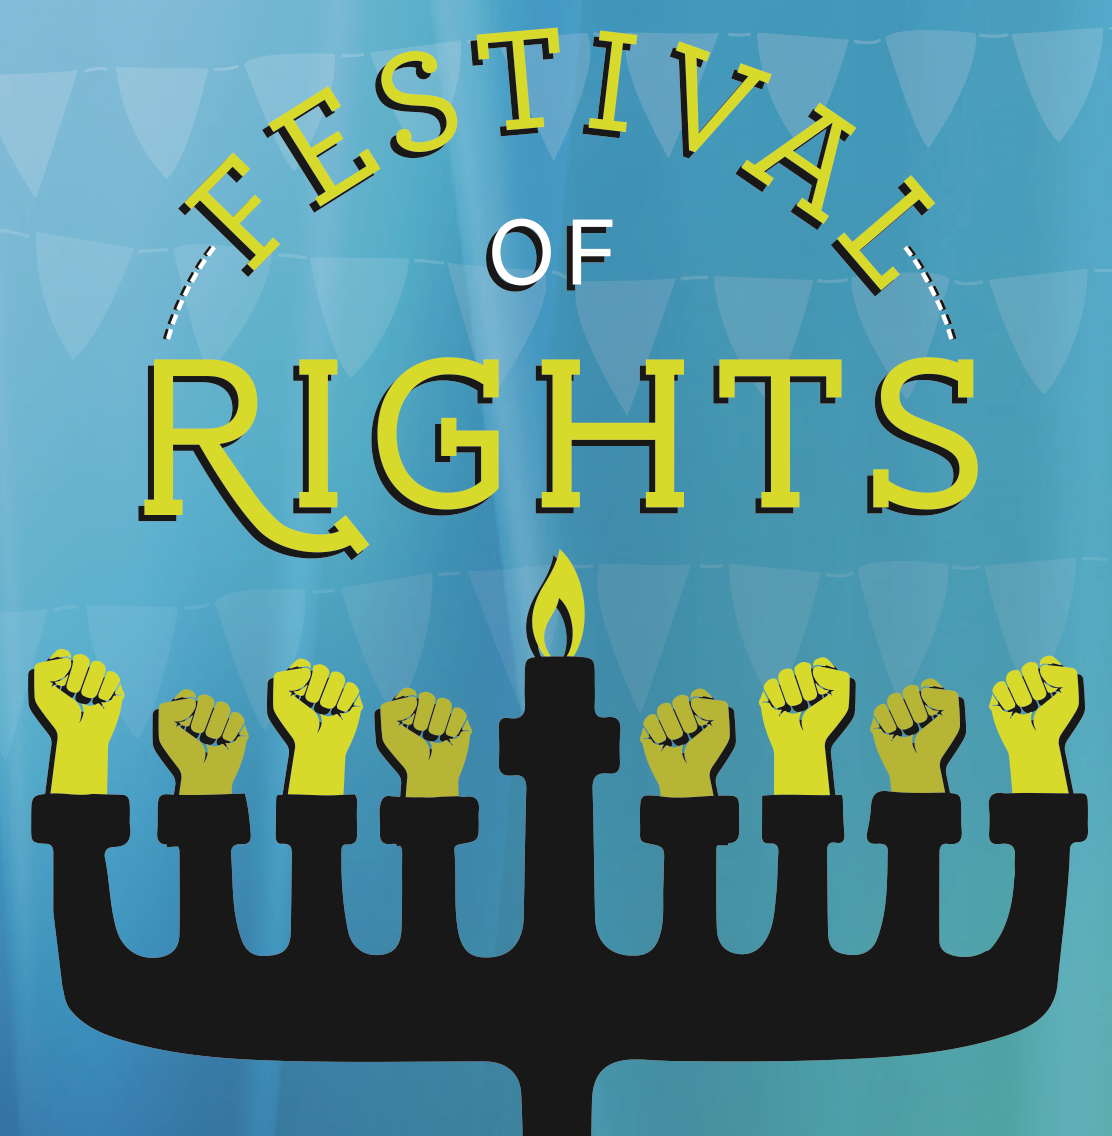 Festival_of_Rights_12-07-14.png